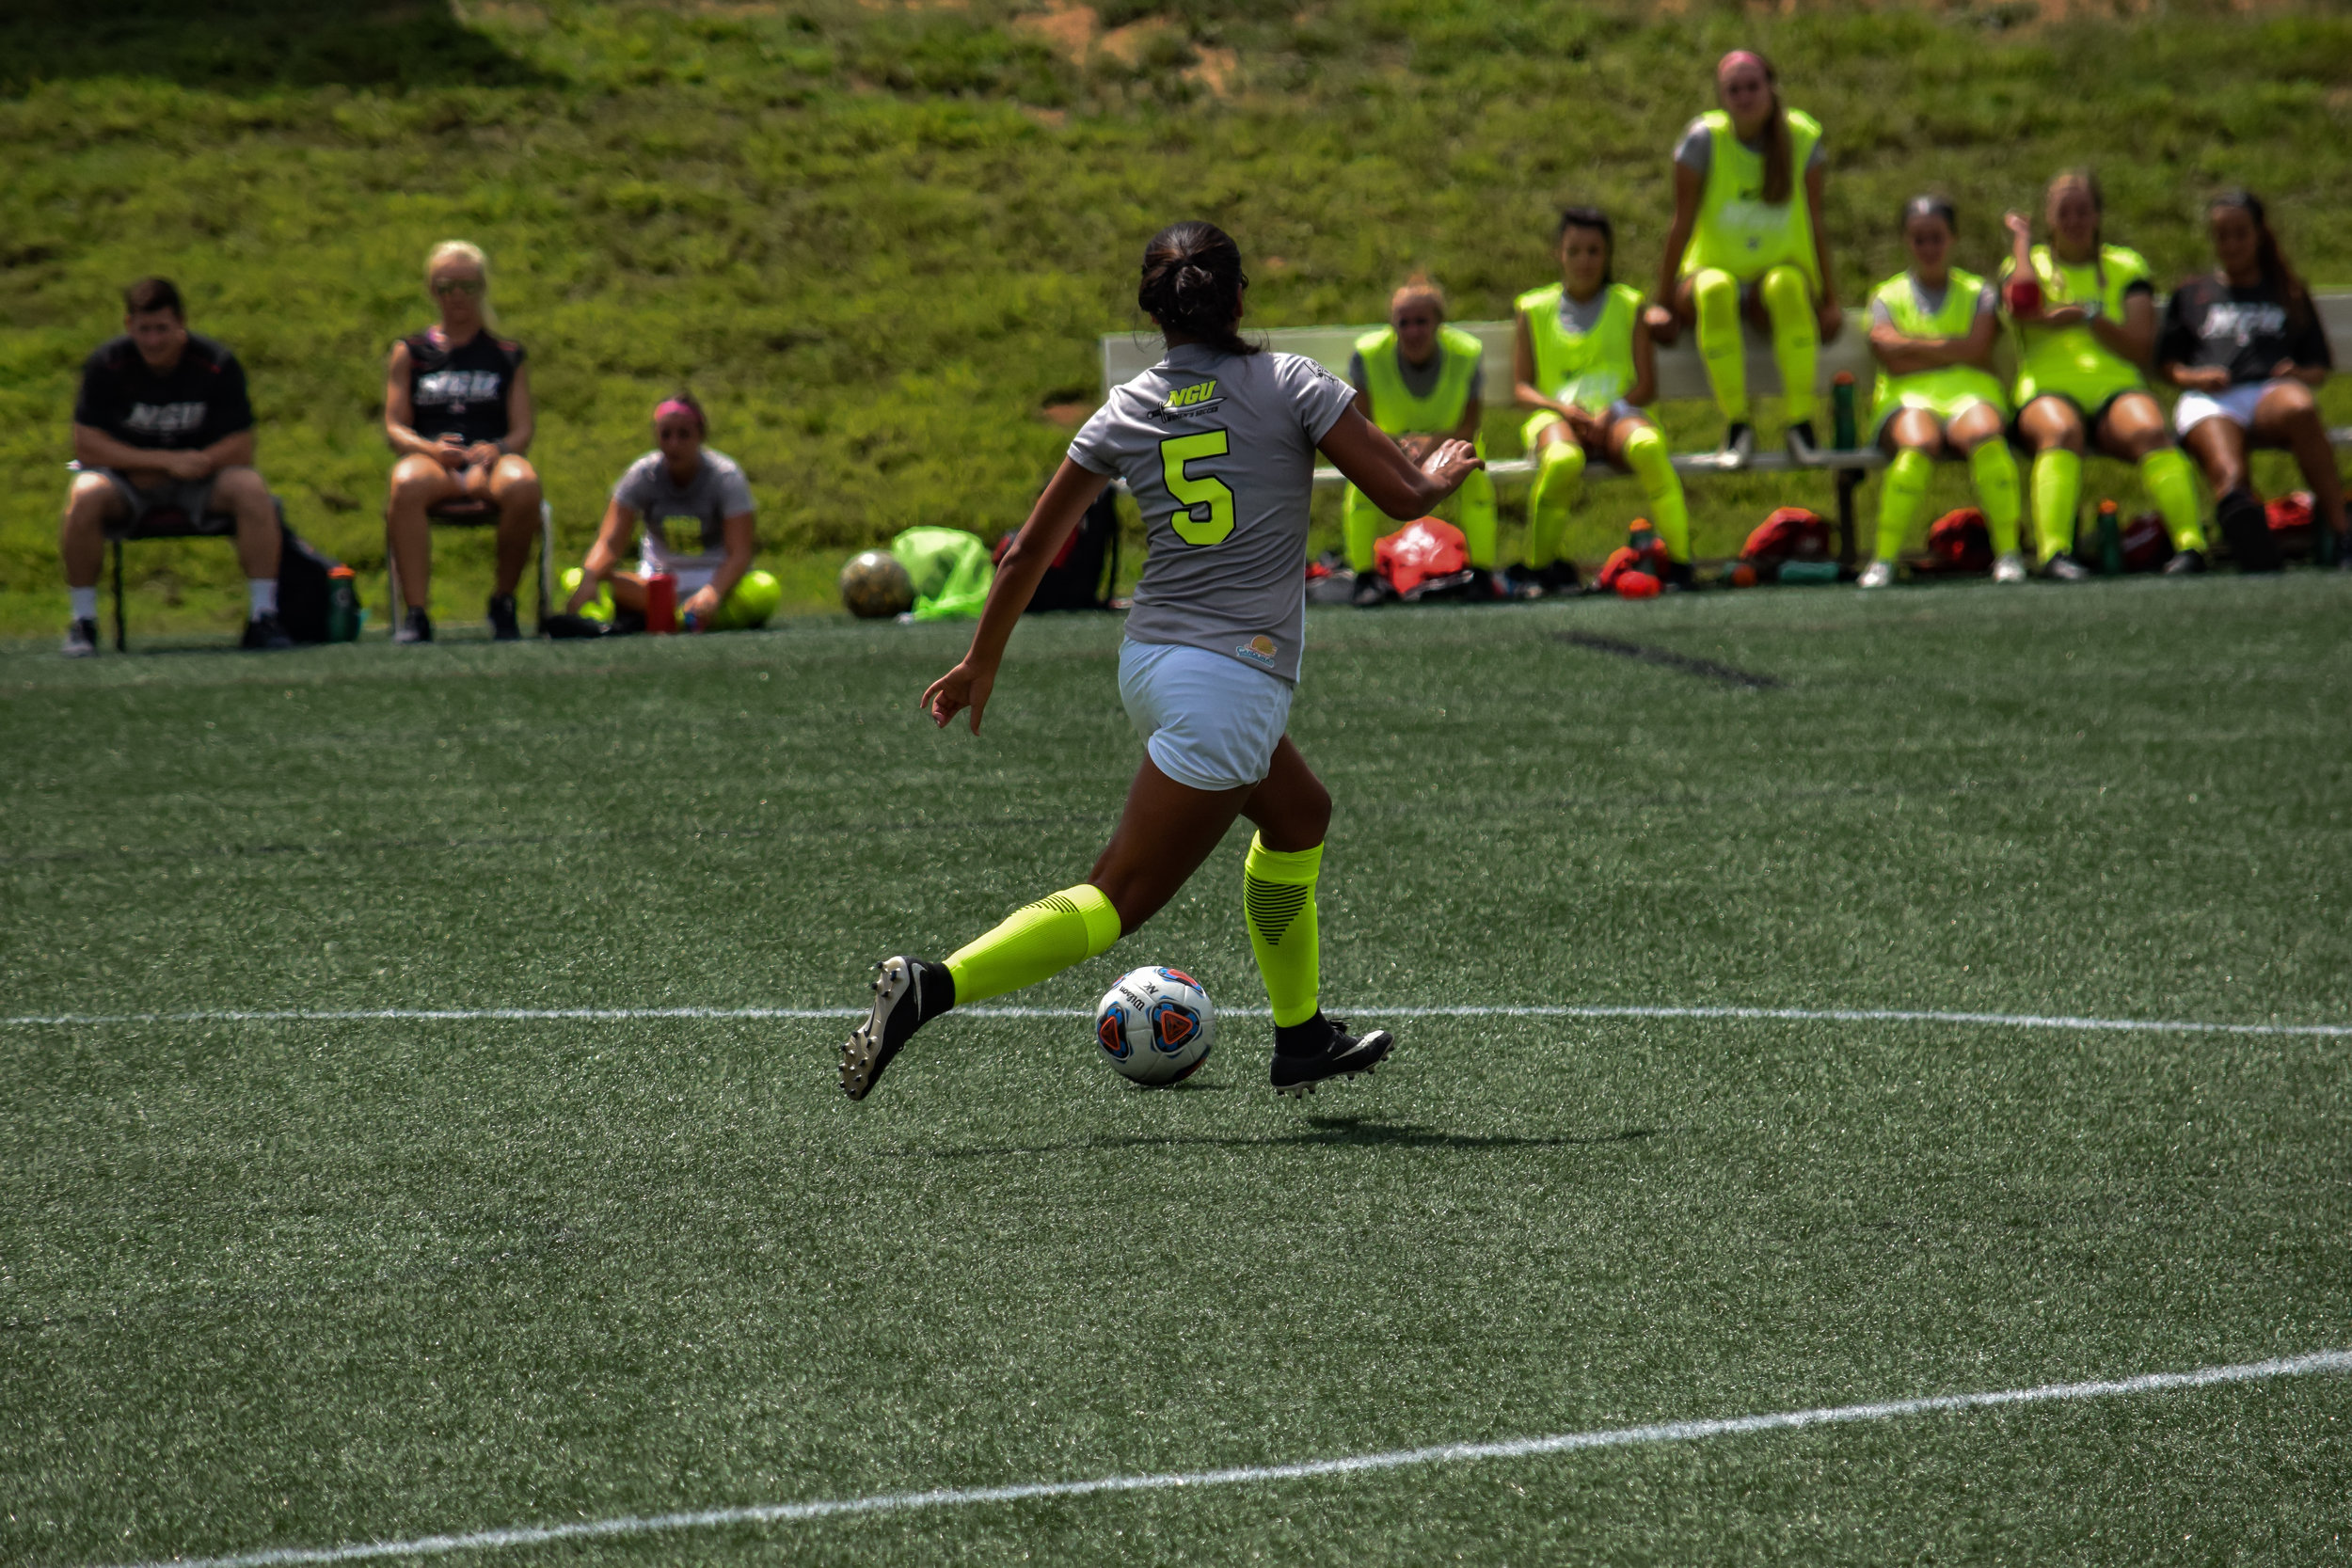 #5 Joelle Chick prepares to plant her foot in order to kick the ball to another teammate.